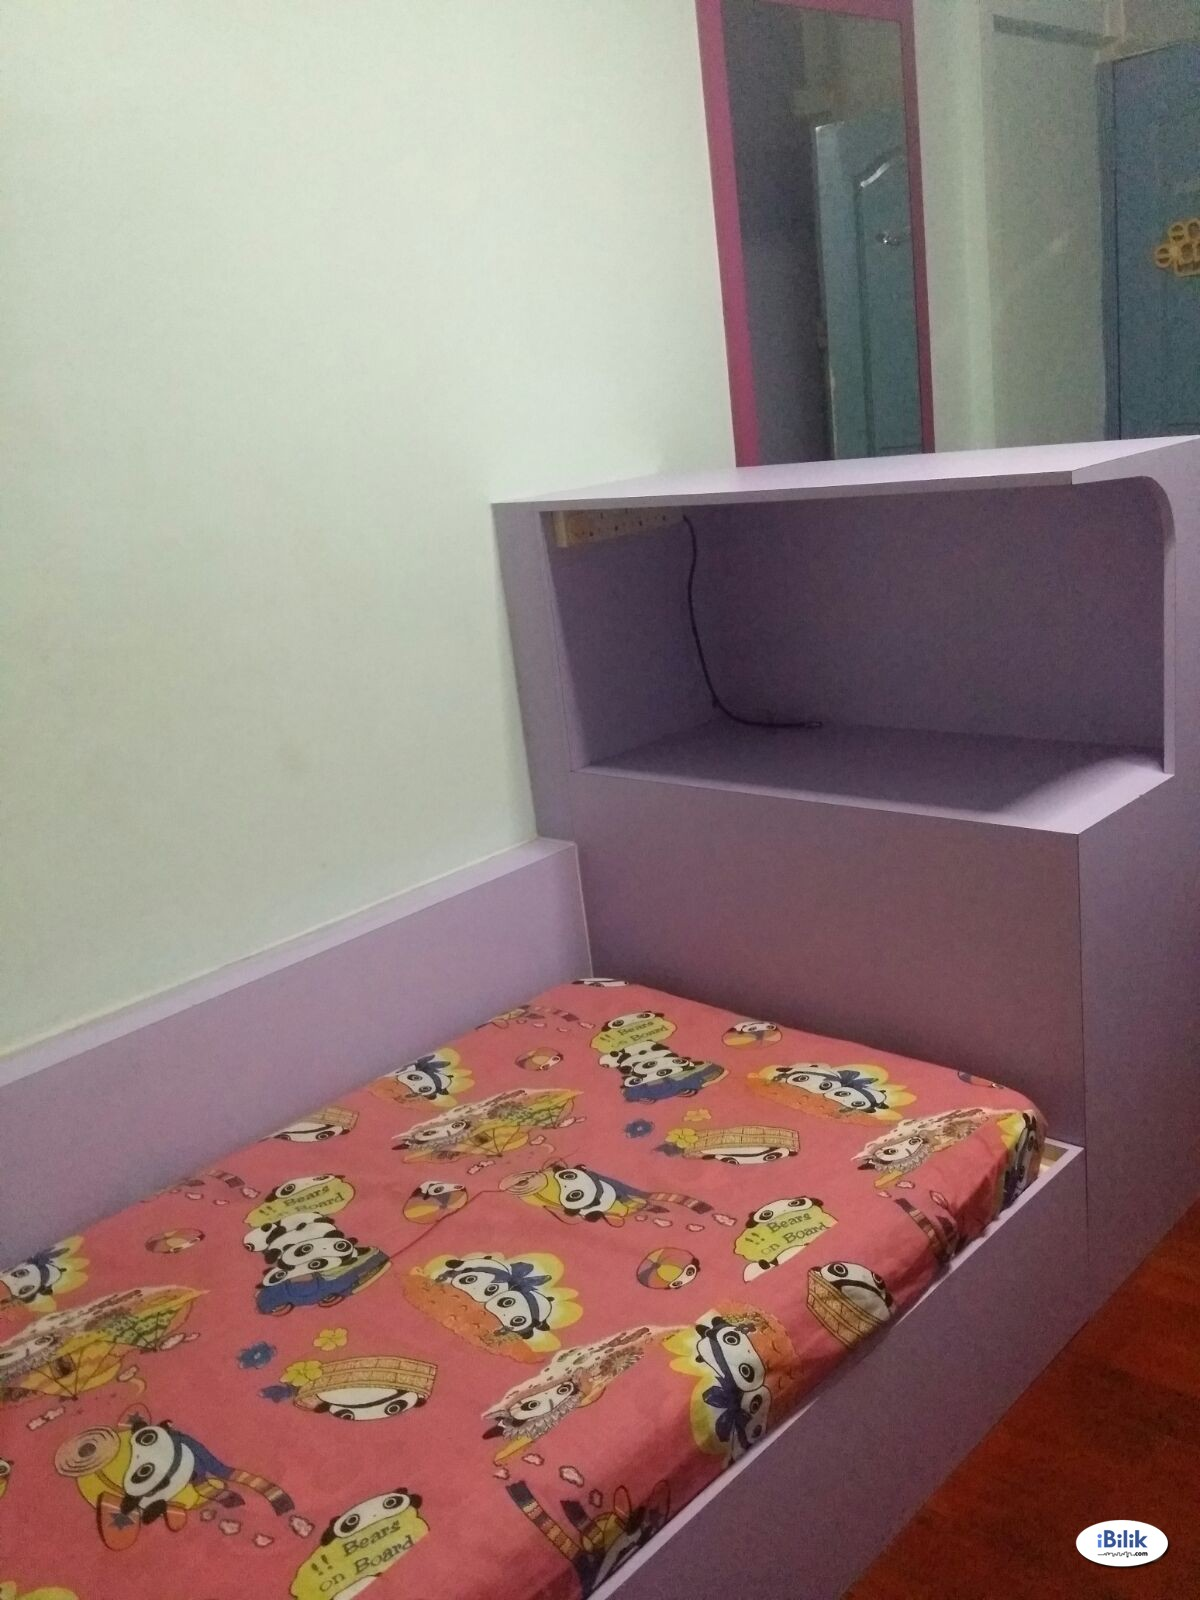 Middle Room at Bedok Residences, Bedok